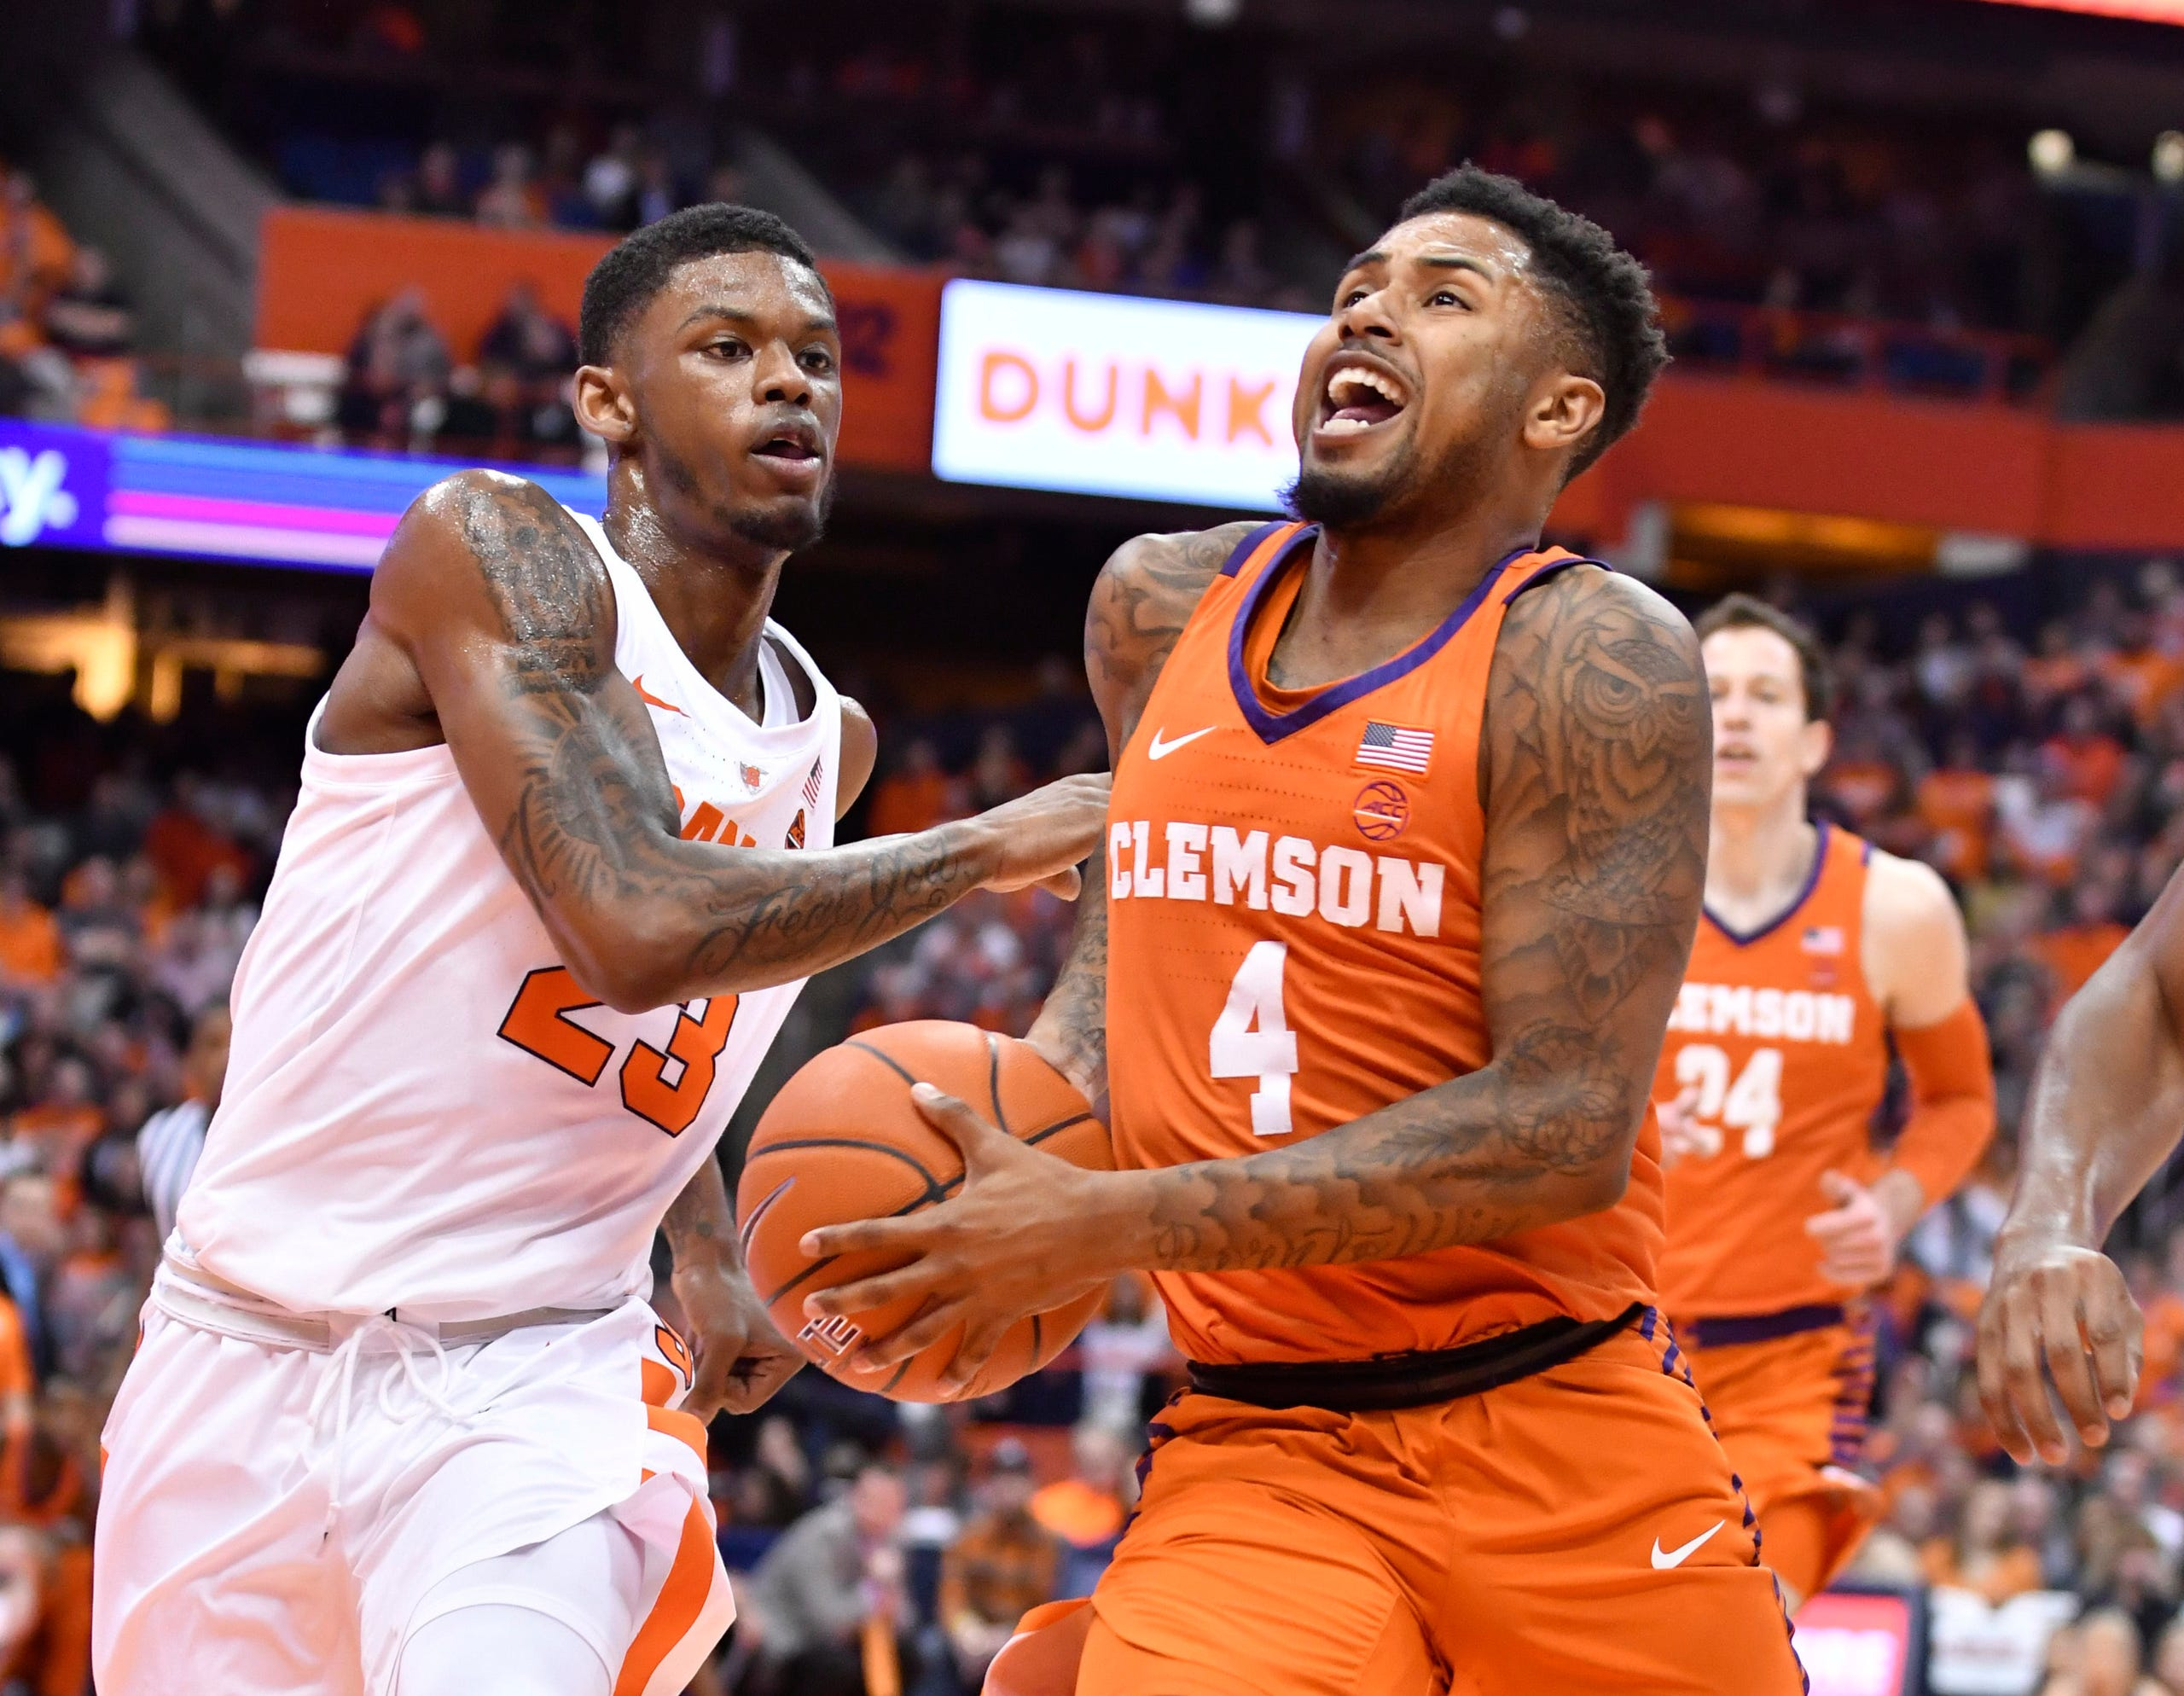 Syracuse Basketball Beats Clemson In Acc Matchup